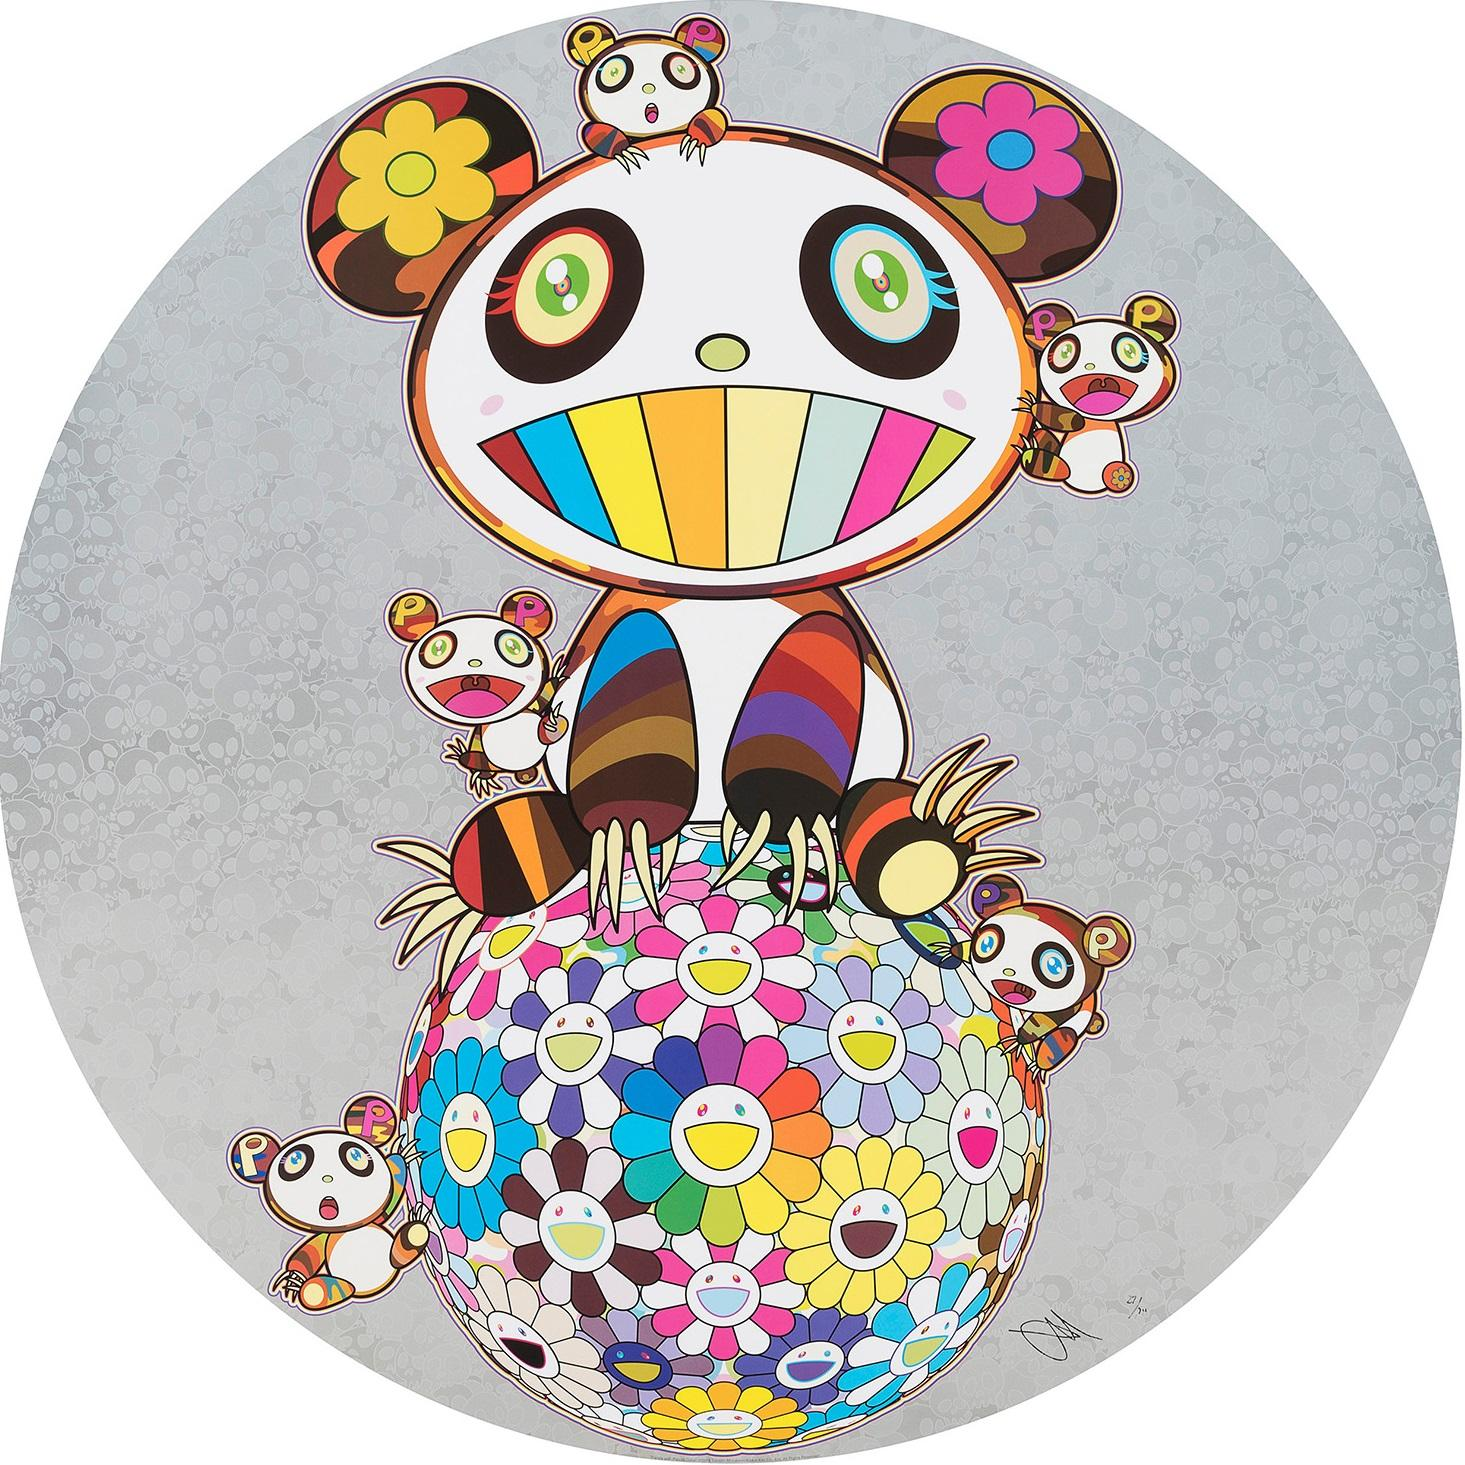 Panda with Panda Cubs (2019). Limited Edition (print) by Murakami signed, framed